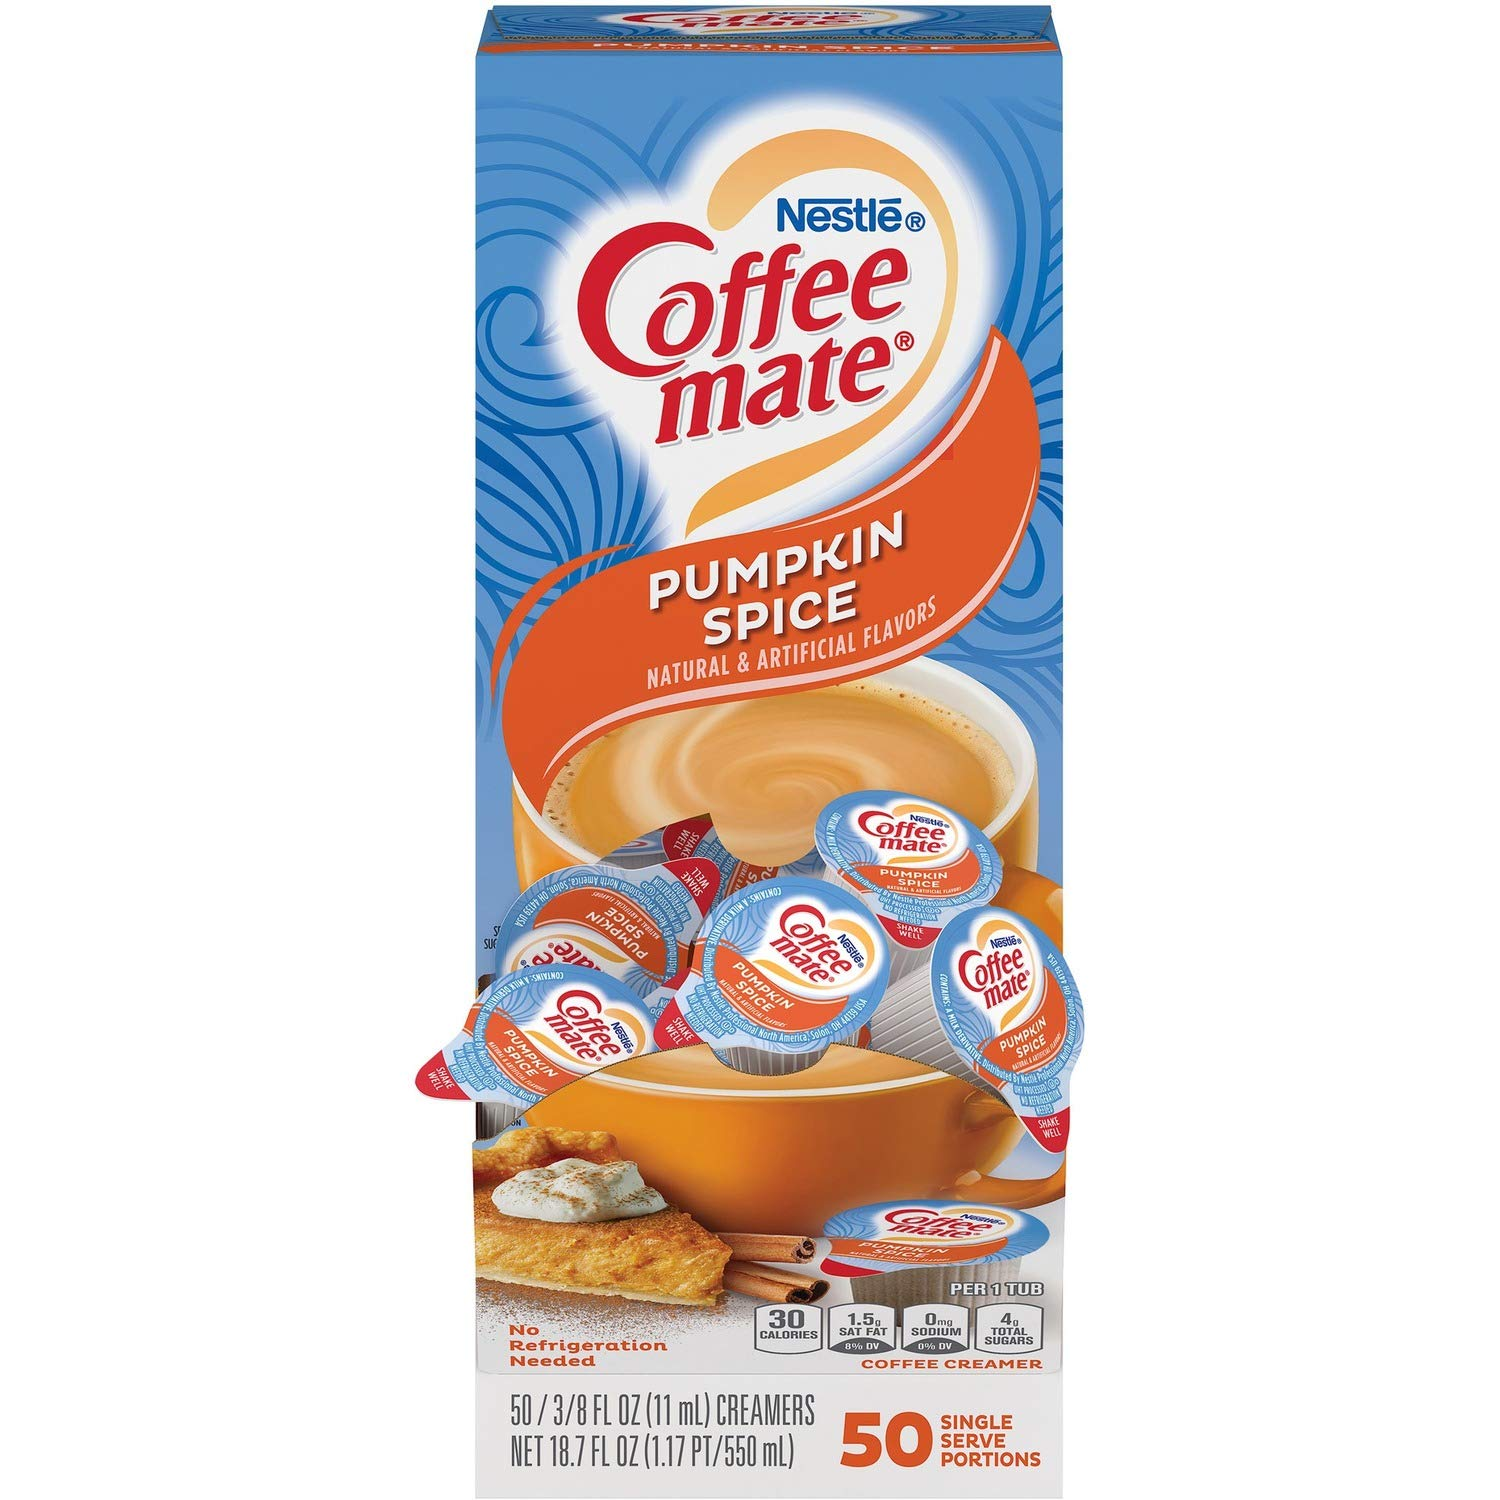 Nestle 75520 Liquid Coffee Creamer, Pumpkin Spice, 3/8 Oz (11ml)Mini Cups, 50/box